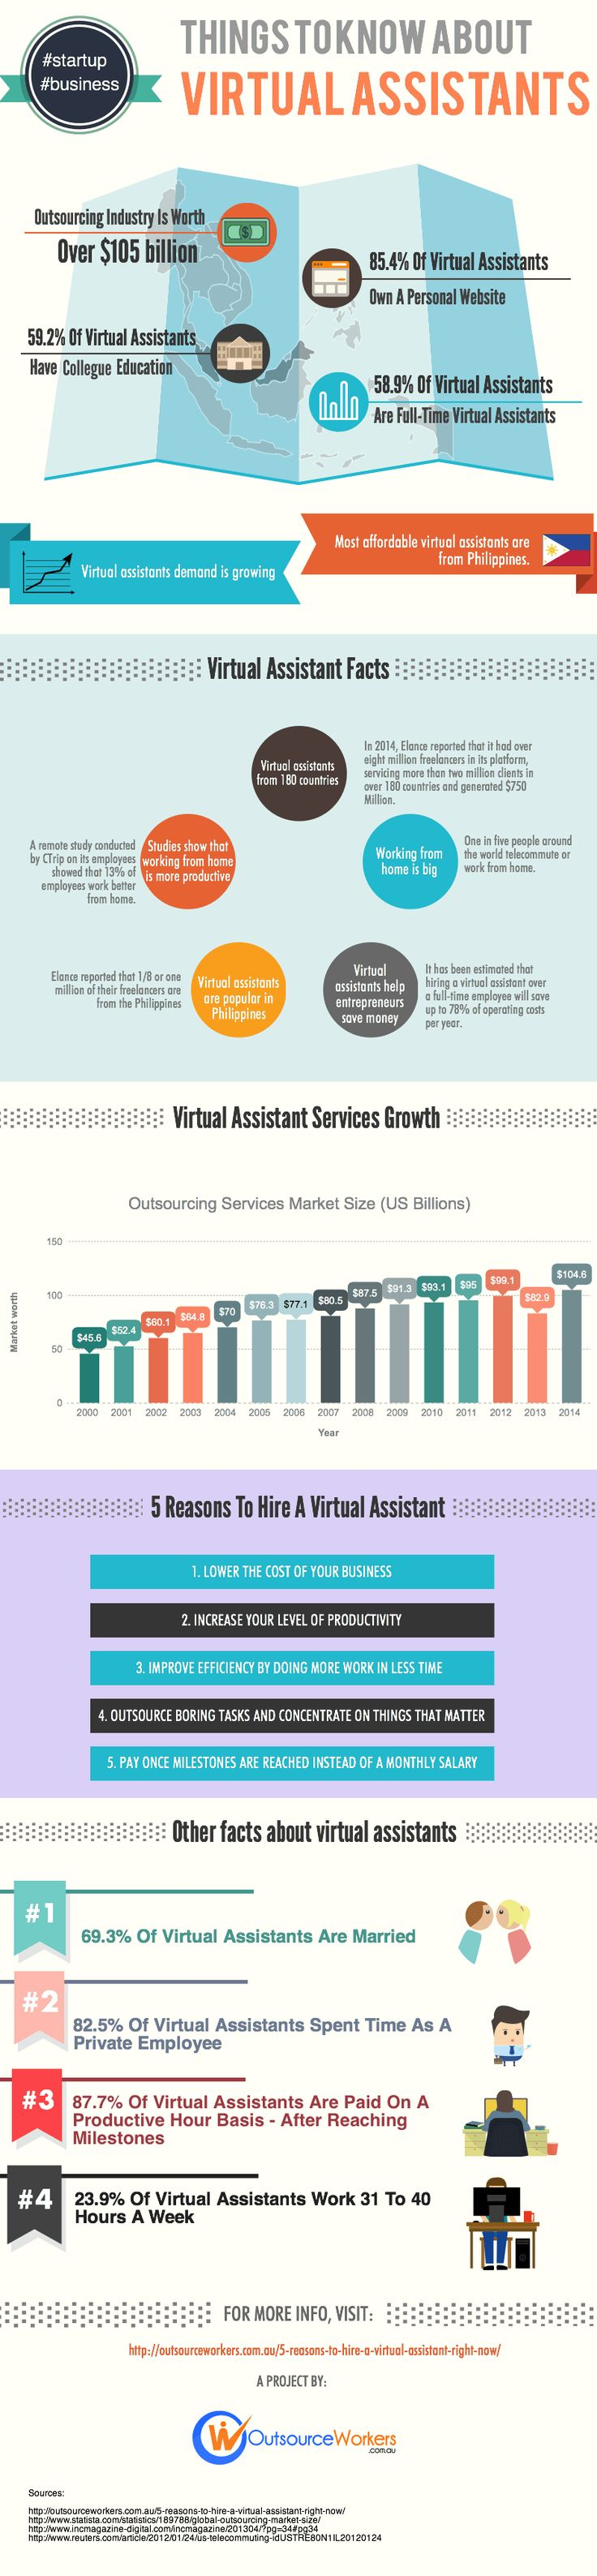 how to grow your business with virtual assistants infographic